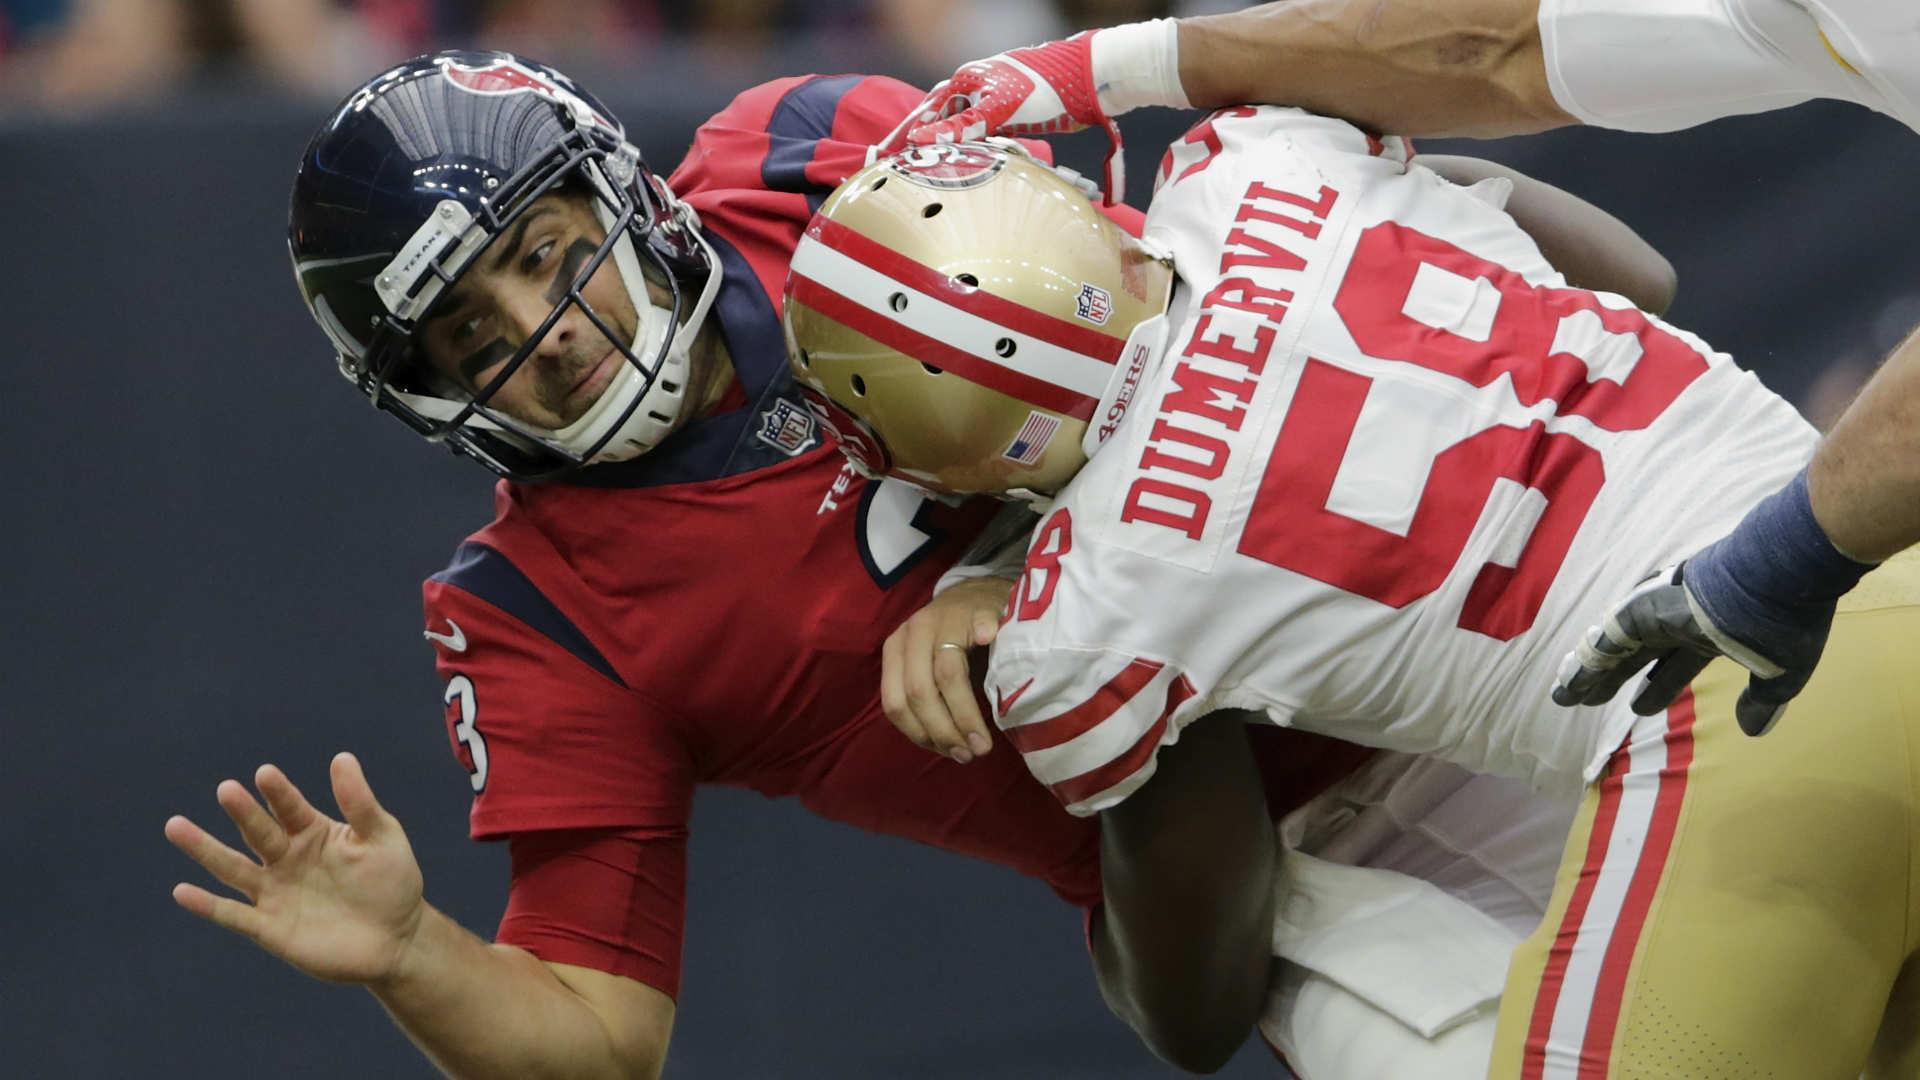 informative speech nfl concussions Home » harvard health blog » concussions in football - harvard health blog concussions in nfl leaders have not been quick to endorse the idea that.